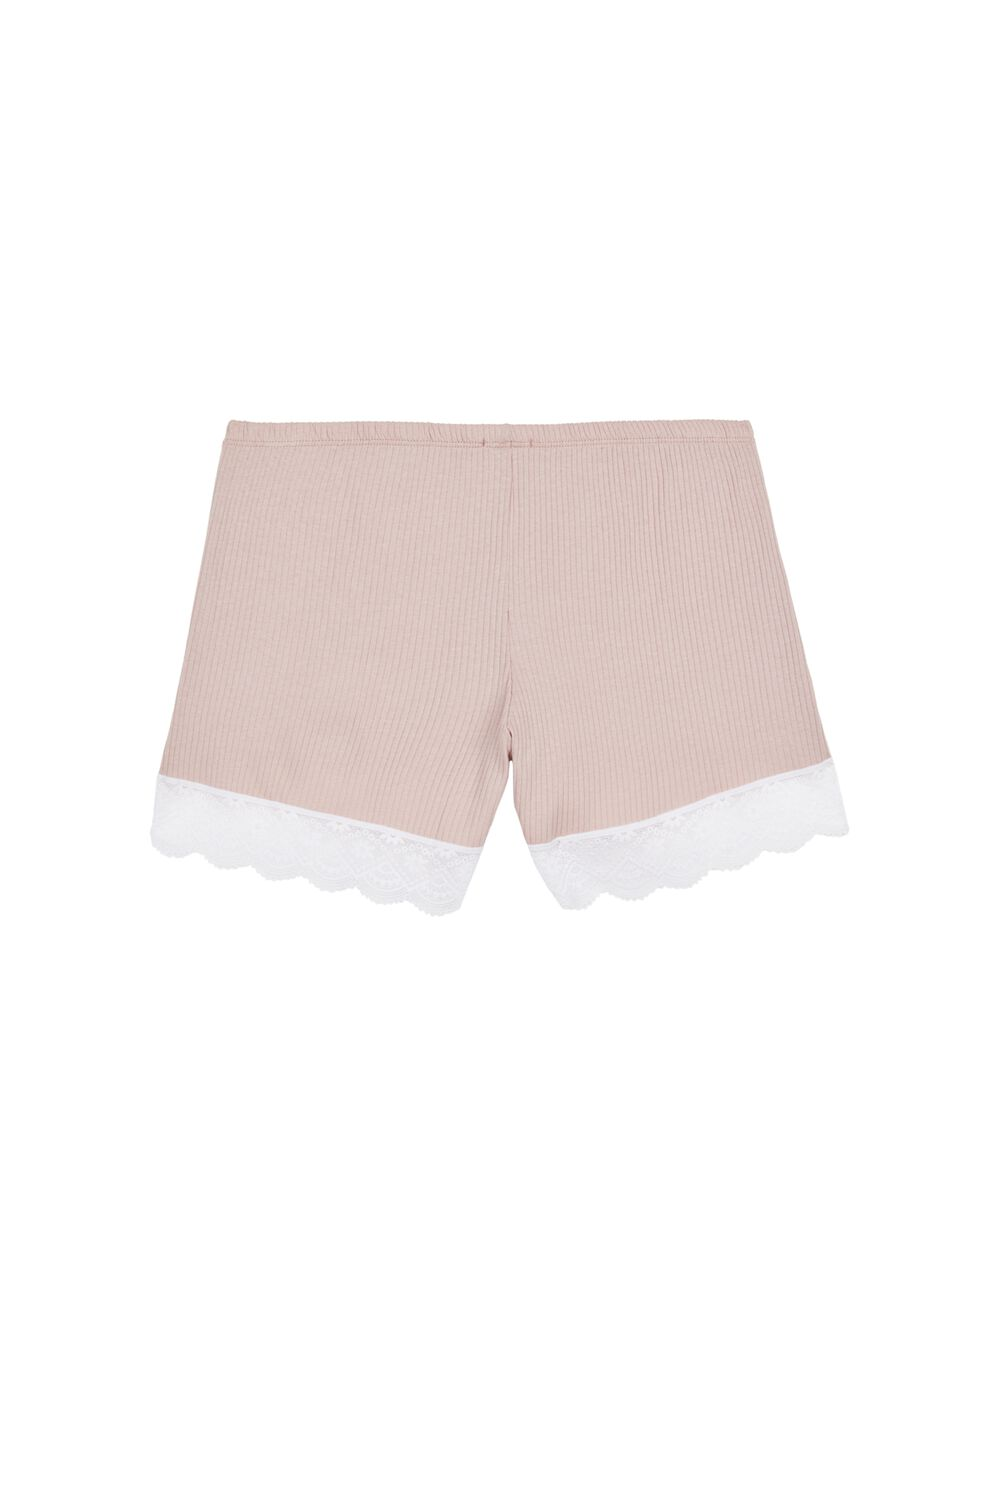 Ribbed Cotton and Lace shorts